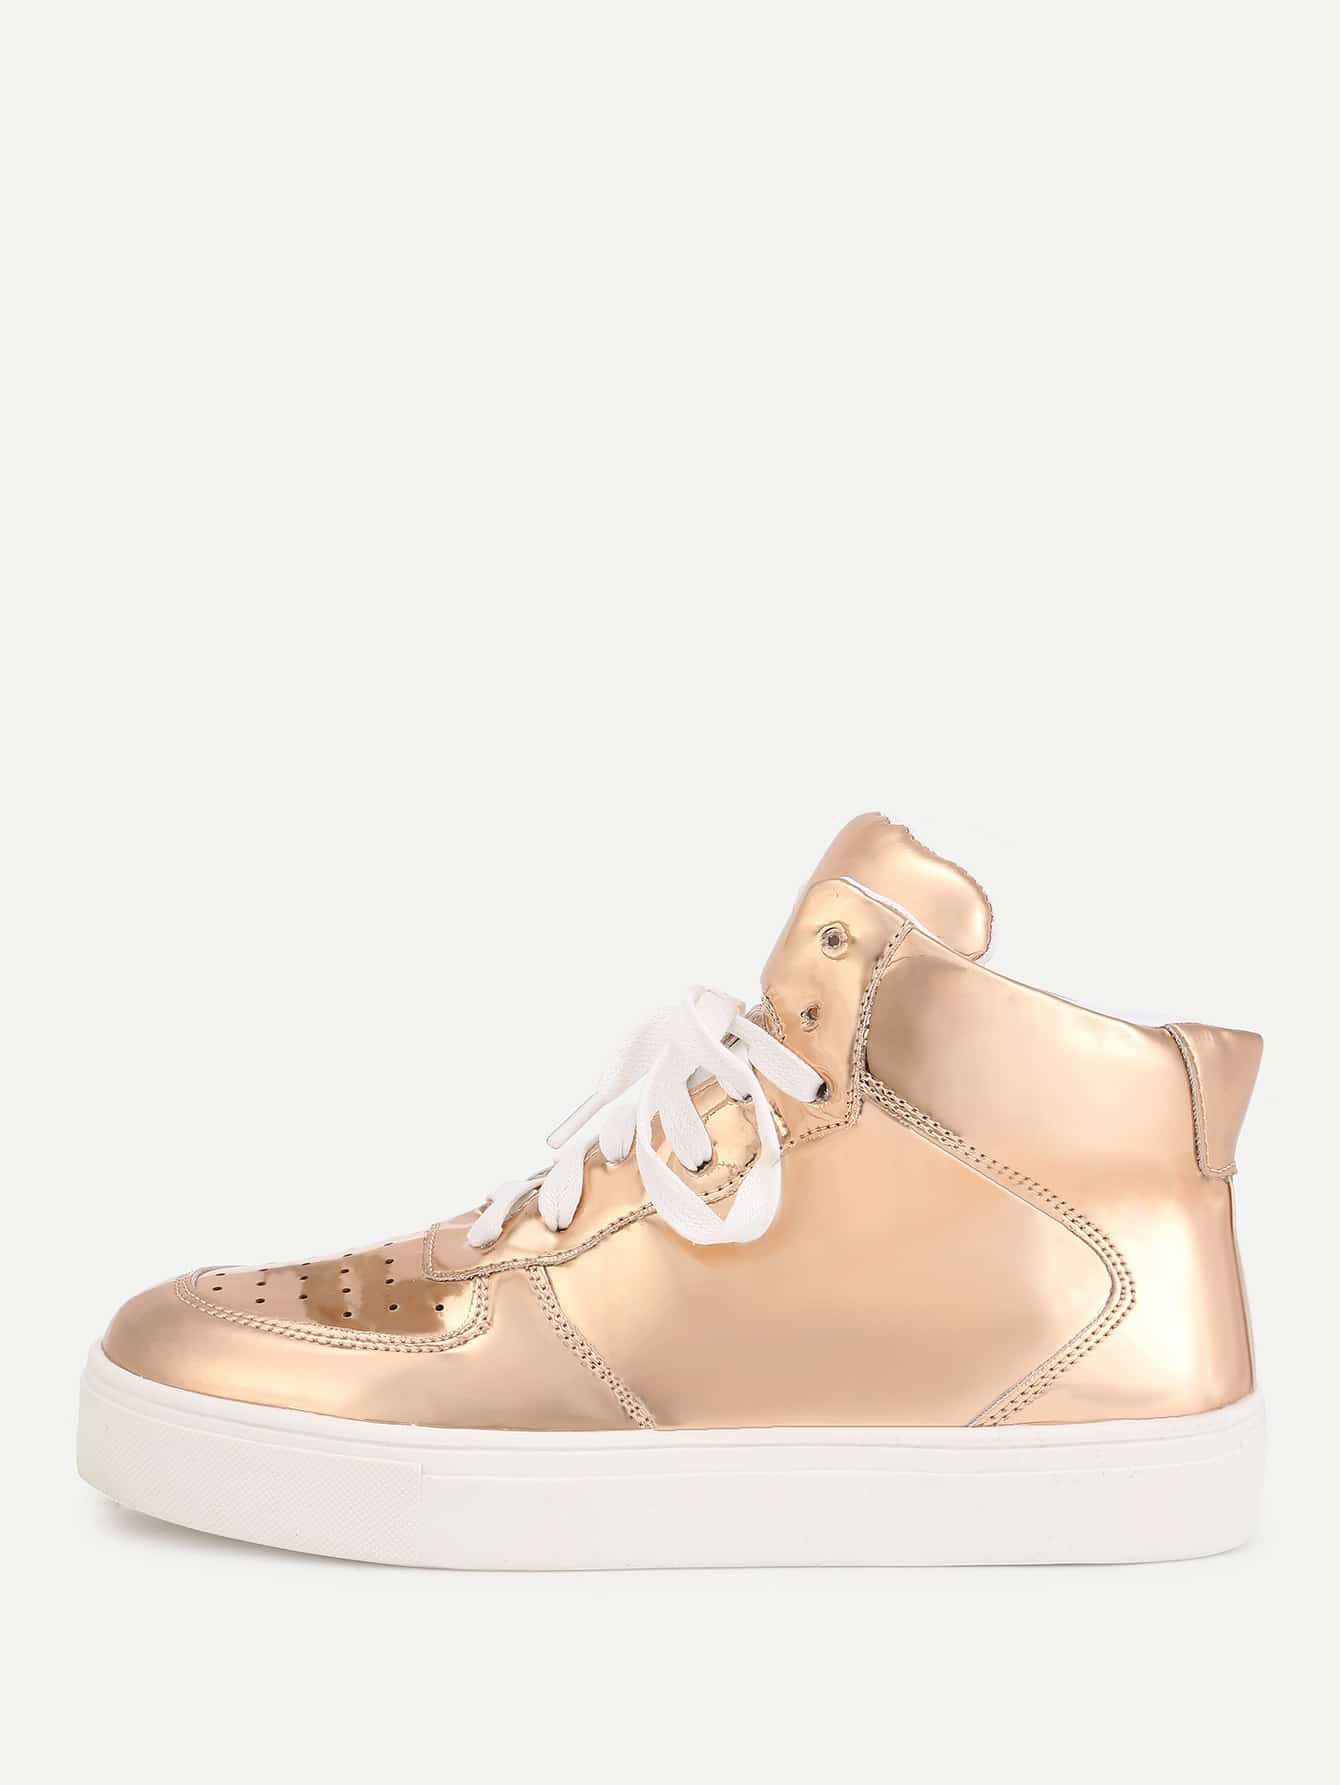 Lace Up High Top PU Sneakers